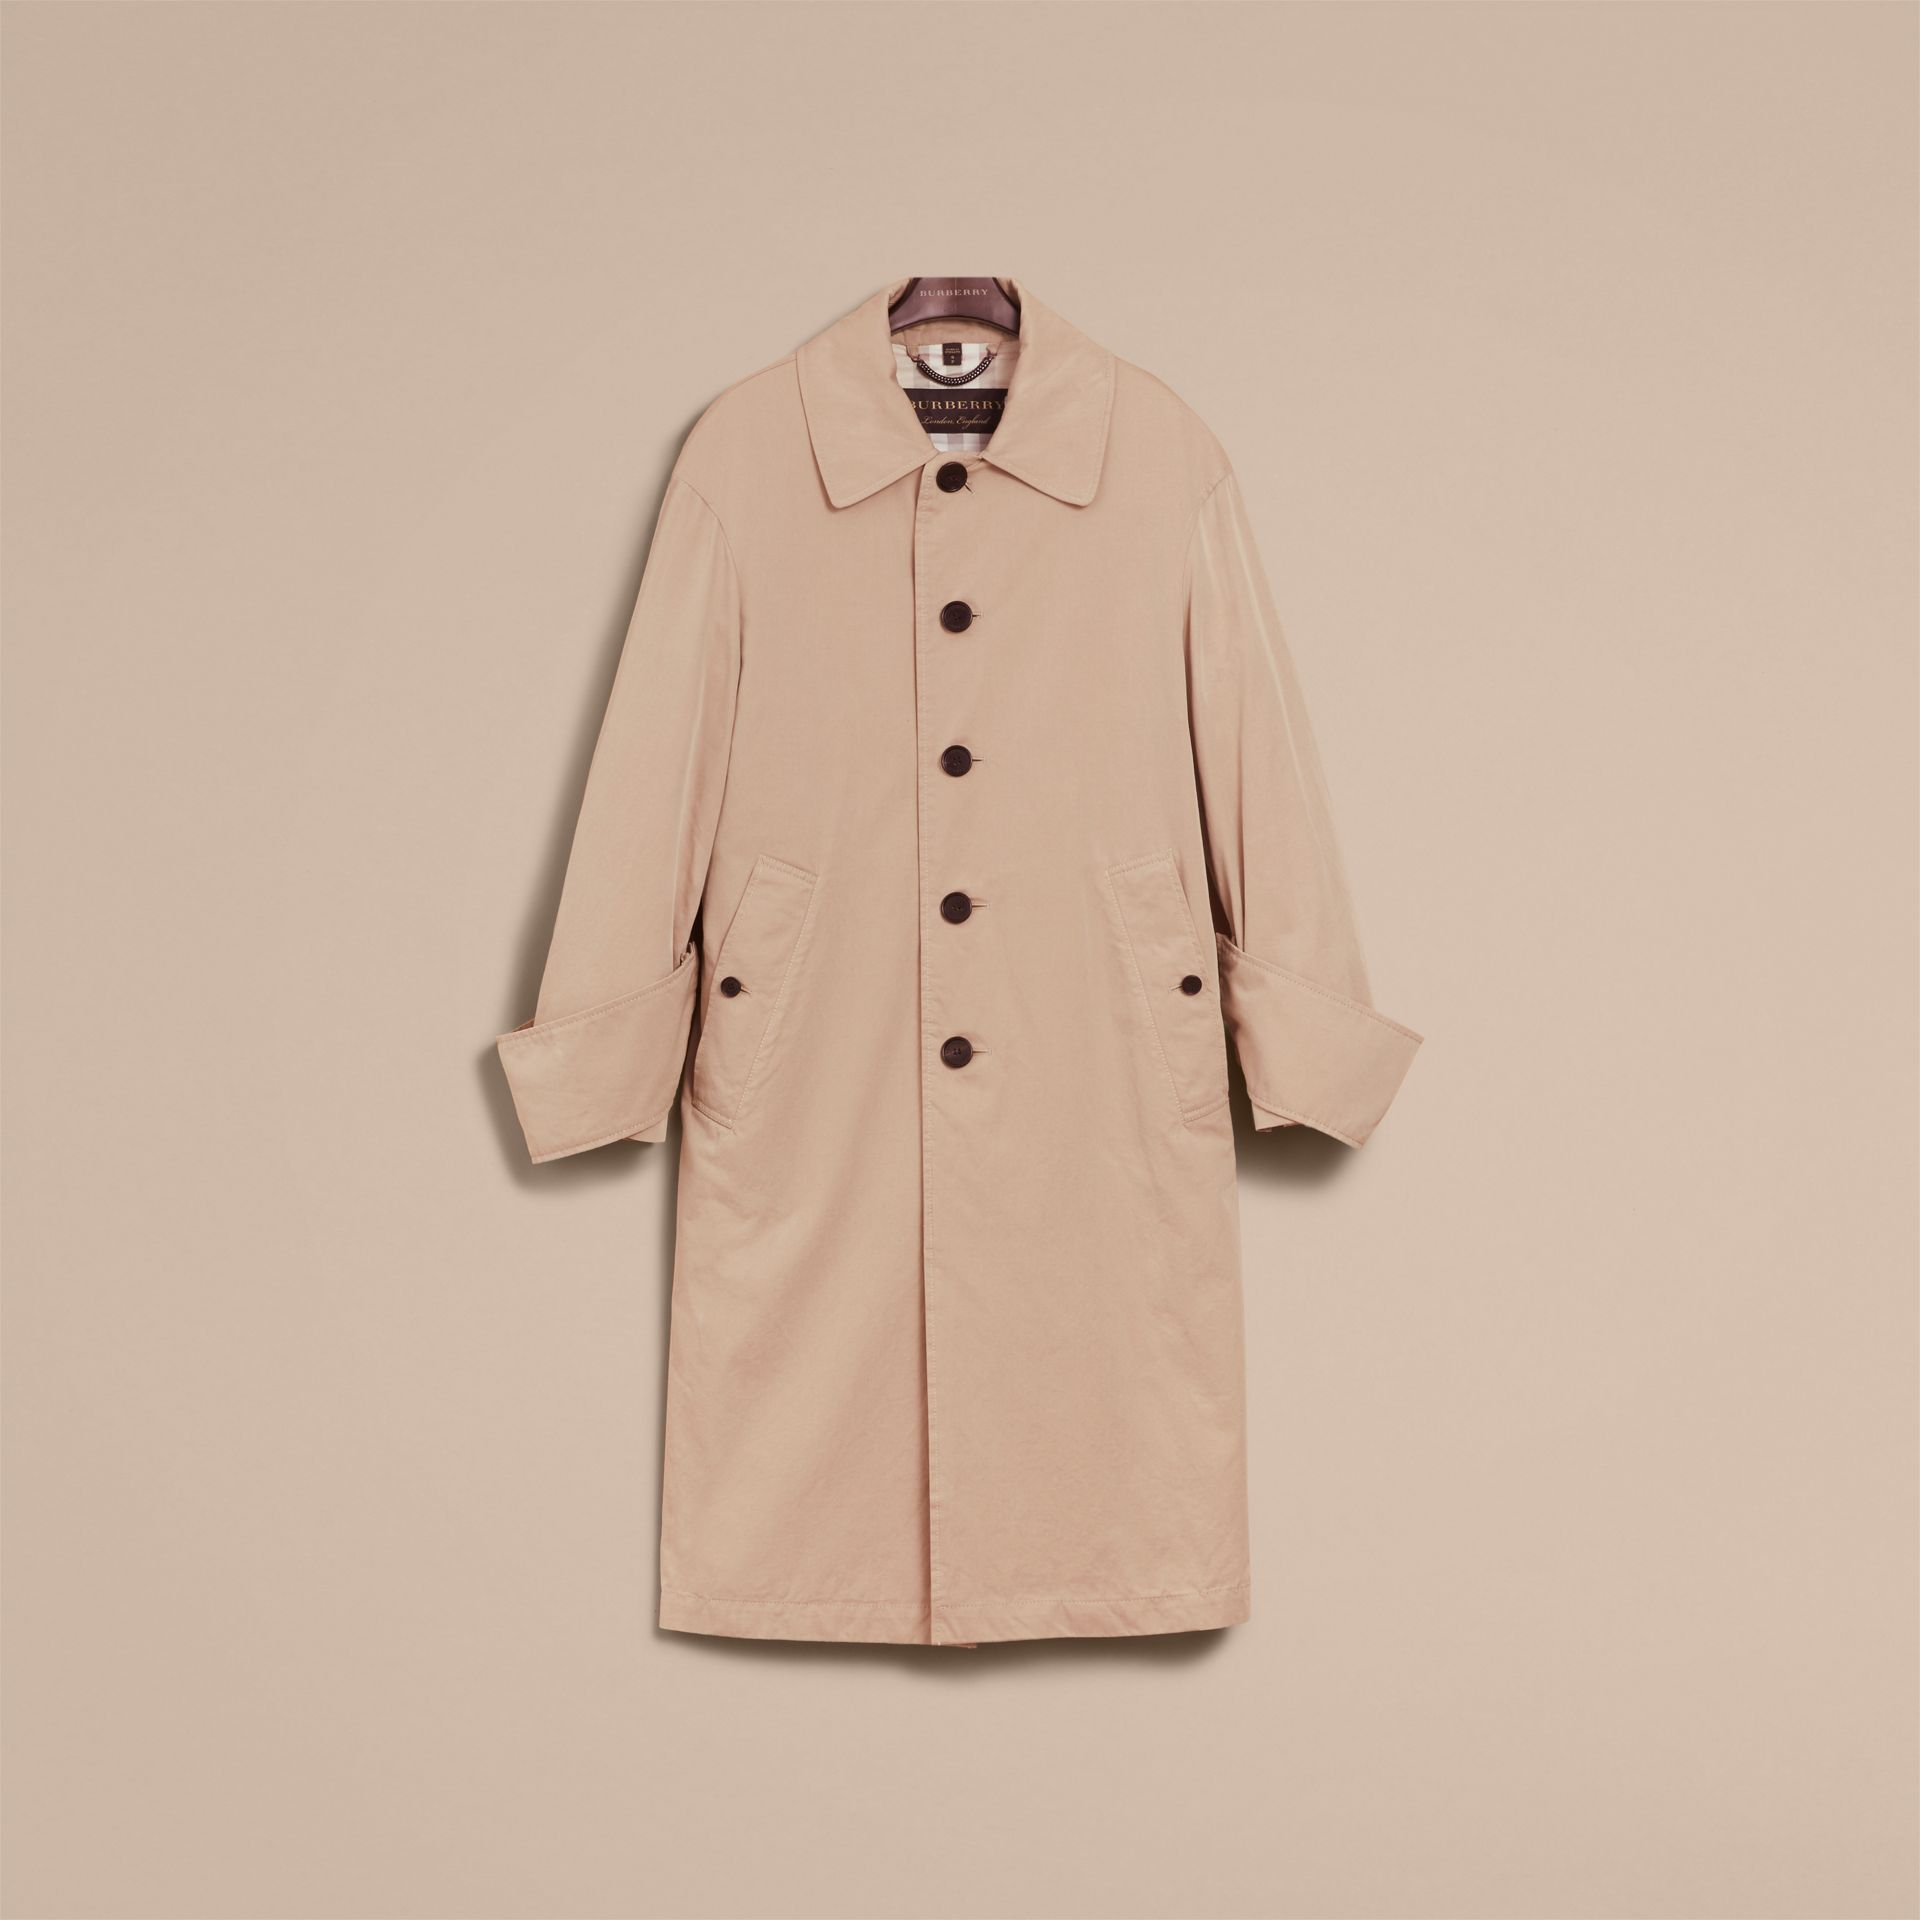 Unisex Tropical Gabardine Car Coat with Exaggerated Cuffs in Light Taupe - Women | Burberry - gallery image 4